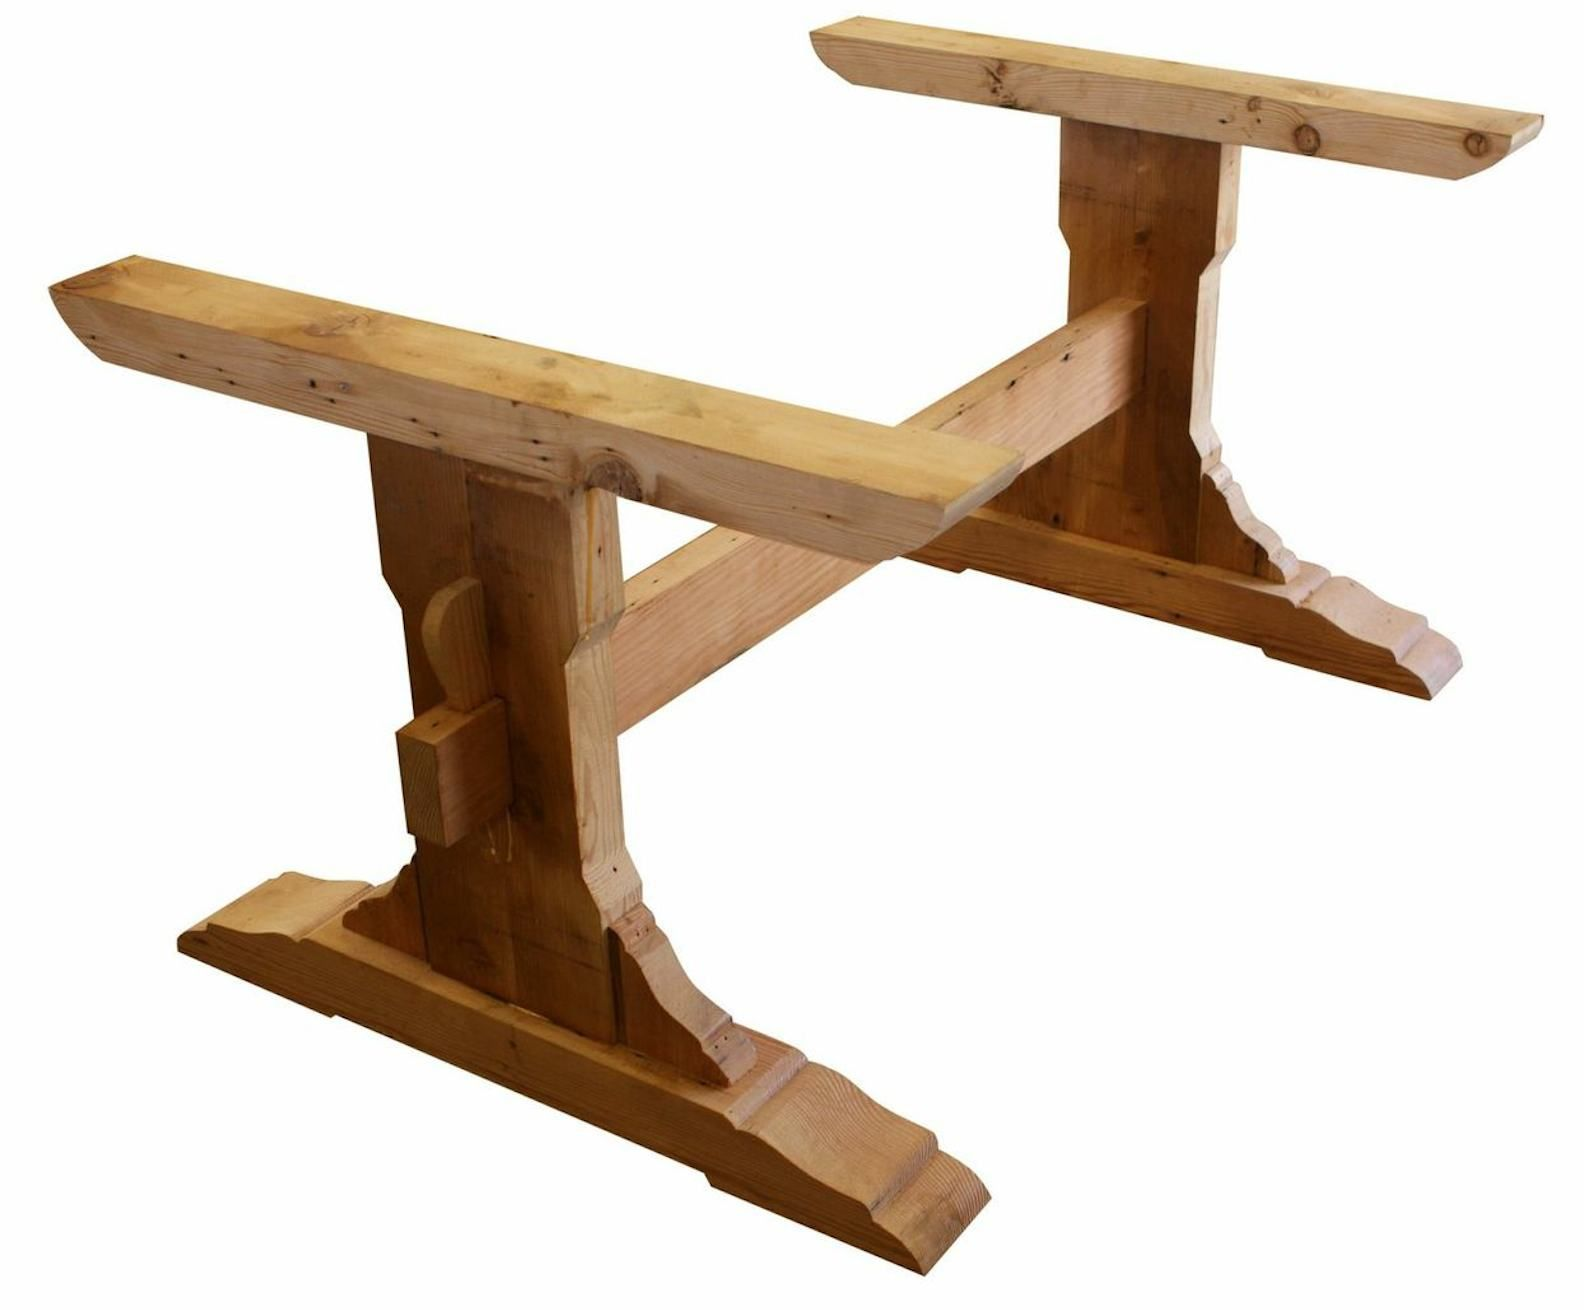 Image of Reclaimed Wood Trestle Table Woodworking  : 5dc0523f9c77d2a75baed33065a32652 from www.pinterest.com size 1584 x 1310 jpeg 96kB